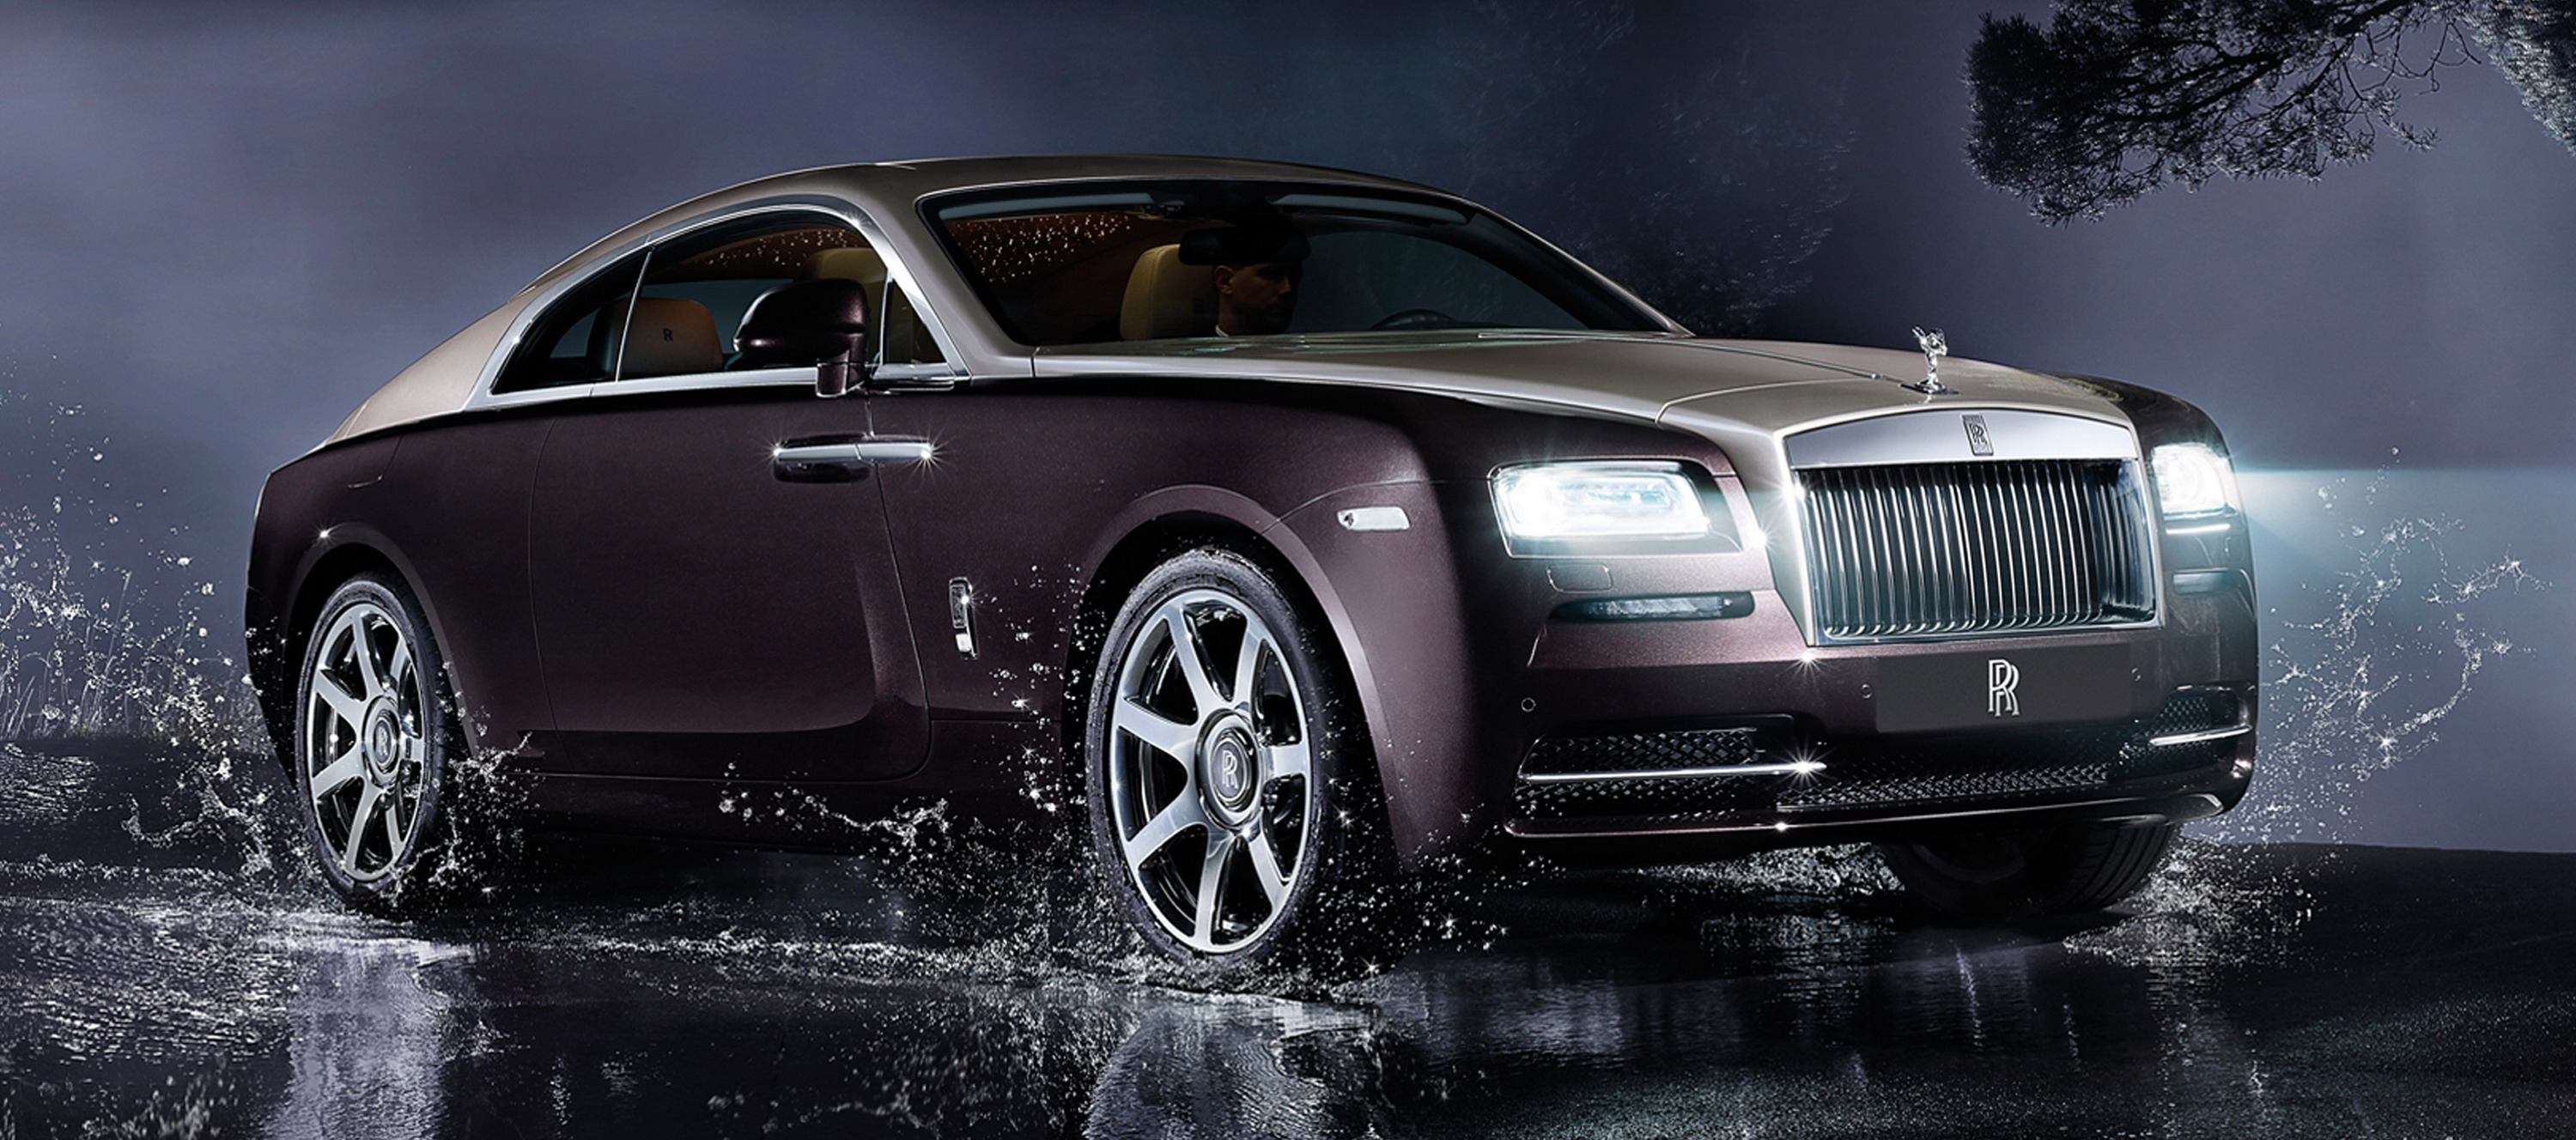 Rolls Royce Wraith Latest News Reviews Specifications Prices Photos And Videos Top Speed